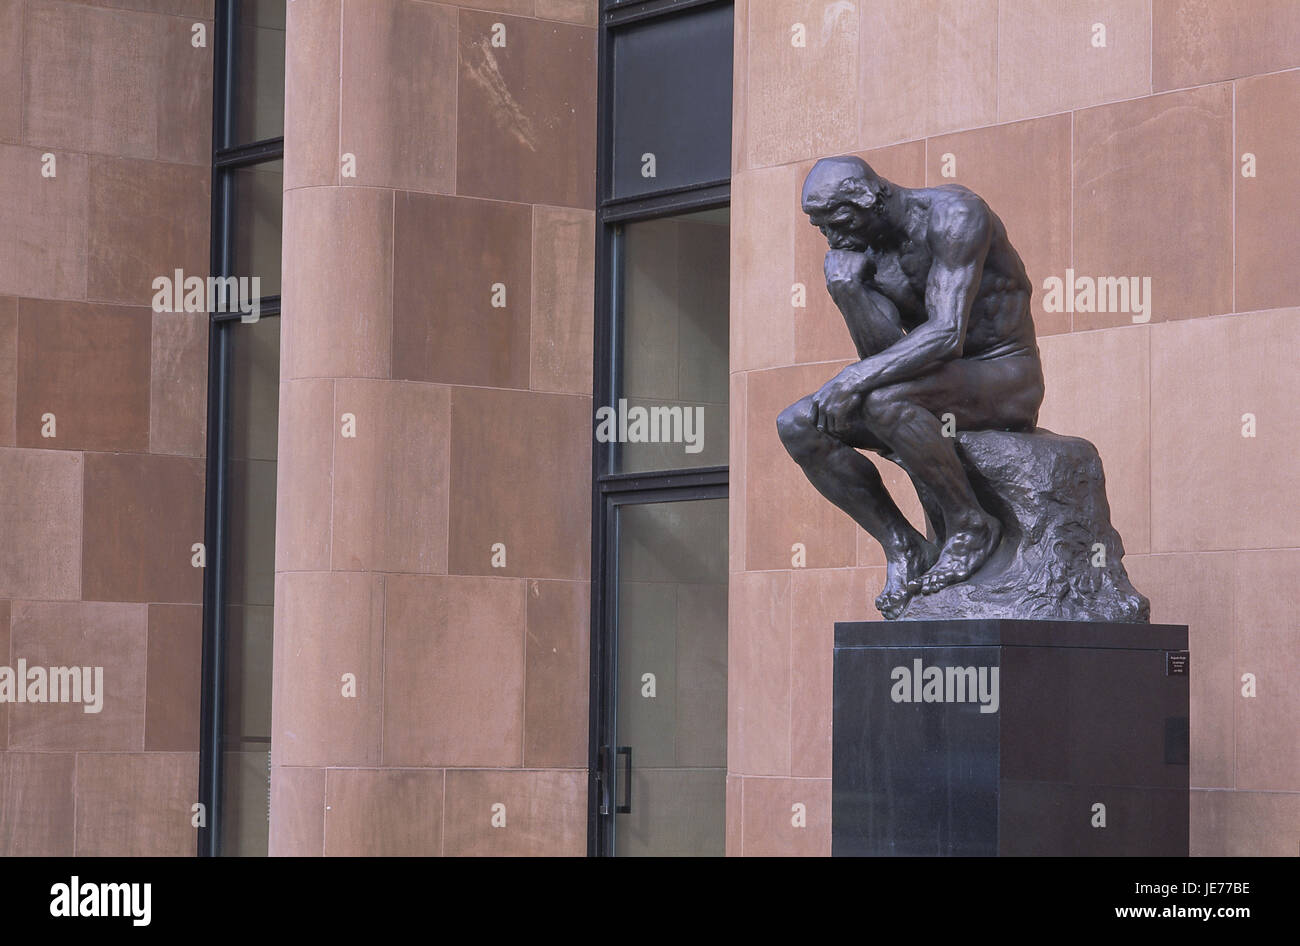 Germany, North Rhine-Westphalia, Bielefeld, arts centre, sculpture of The thinkers, Teutoburger wood, place of interest, - Stock Image